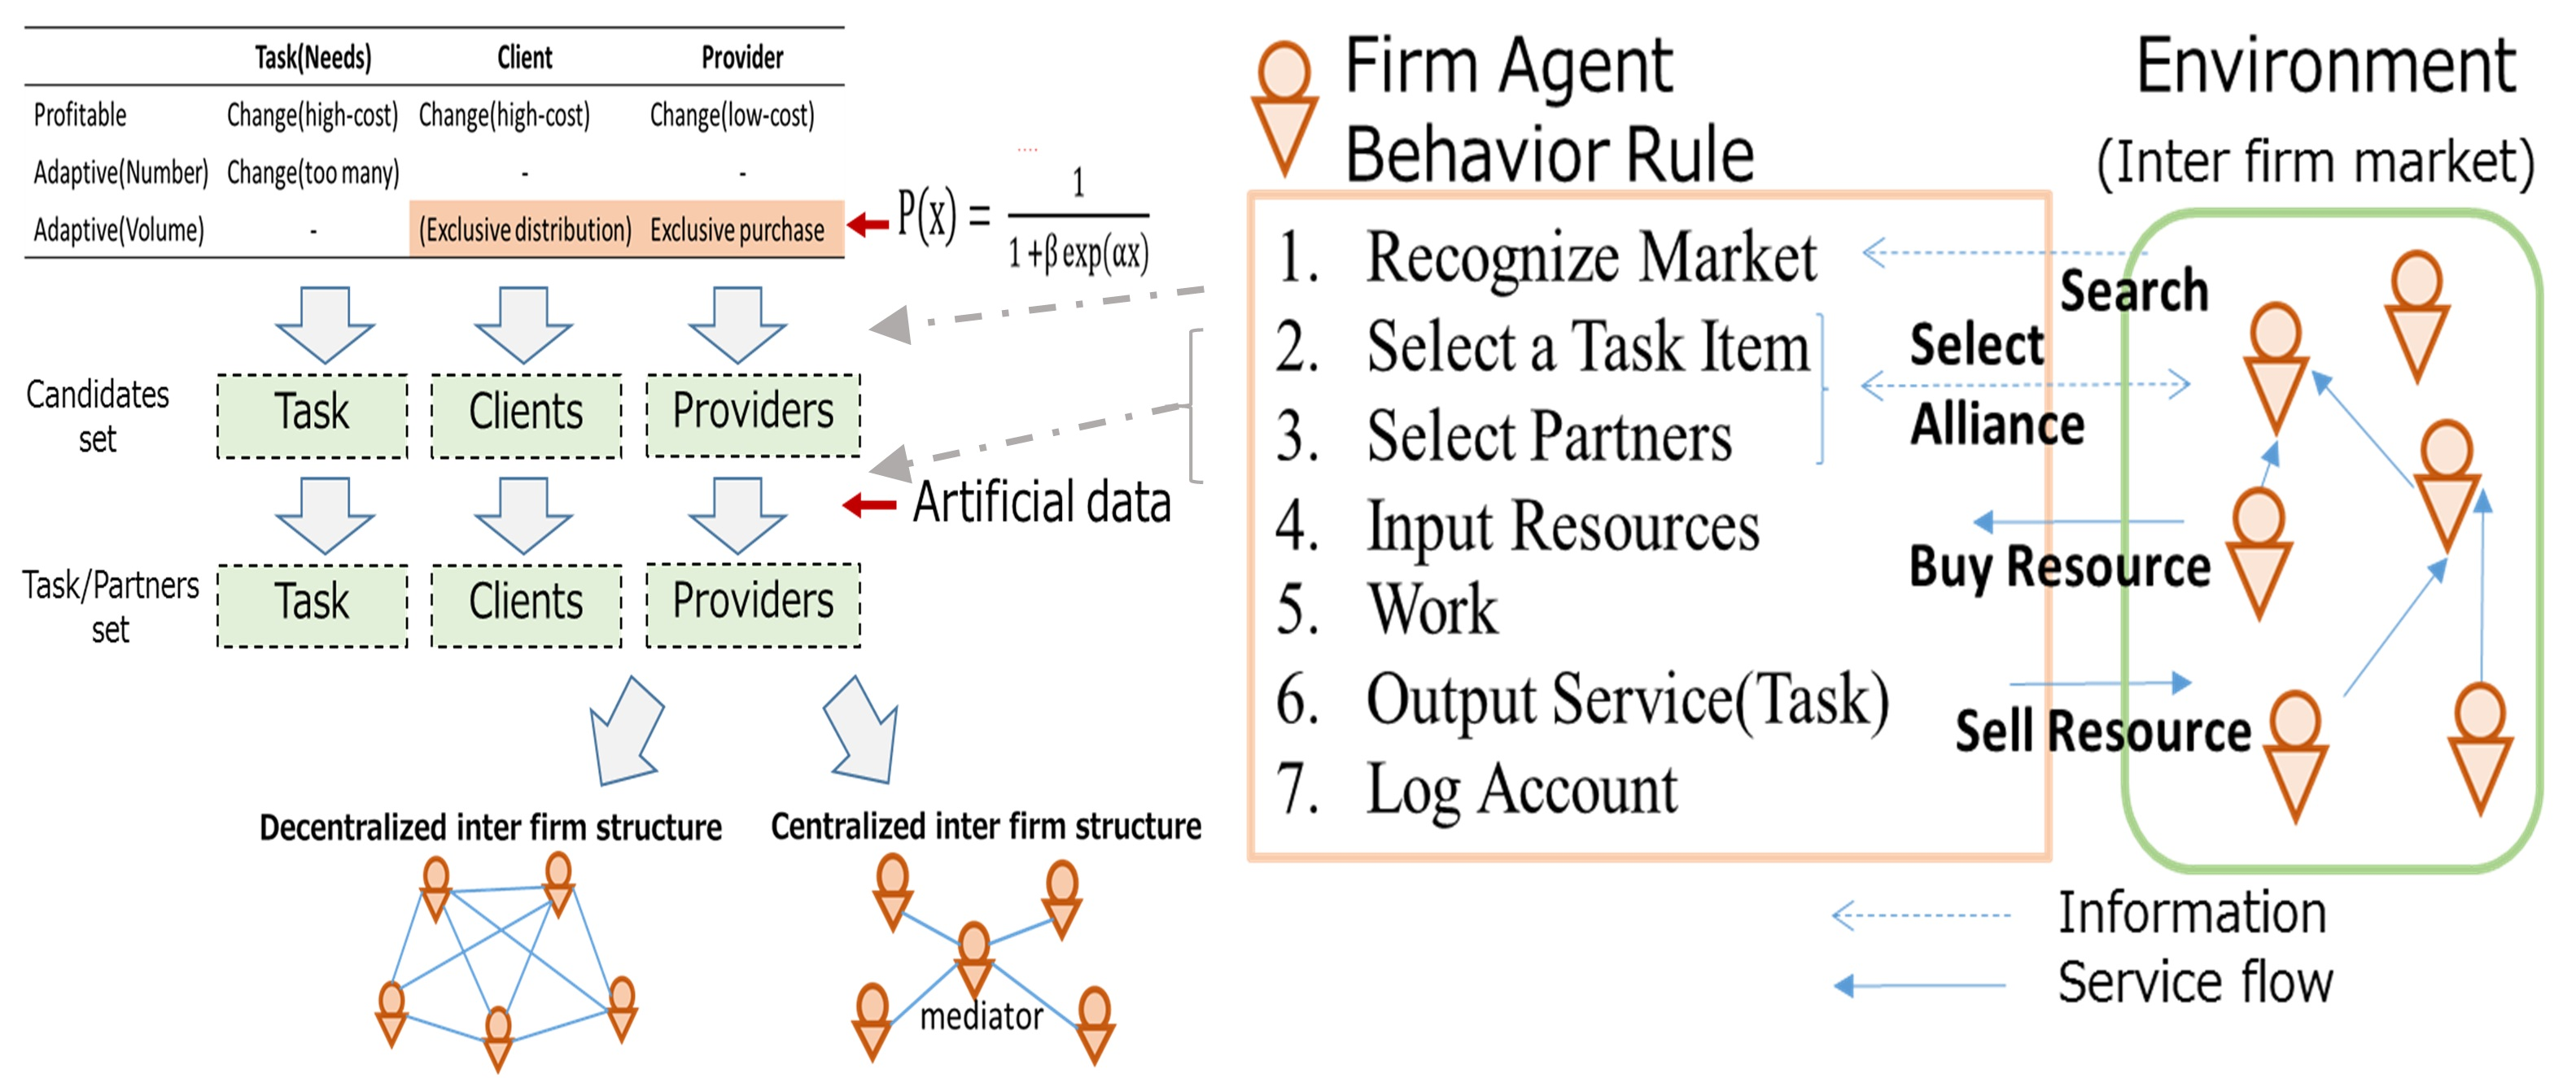 Effects of Trade Environment in Decentralized Inter-Organizational Business Structures Through Agent Simulation